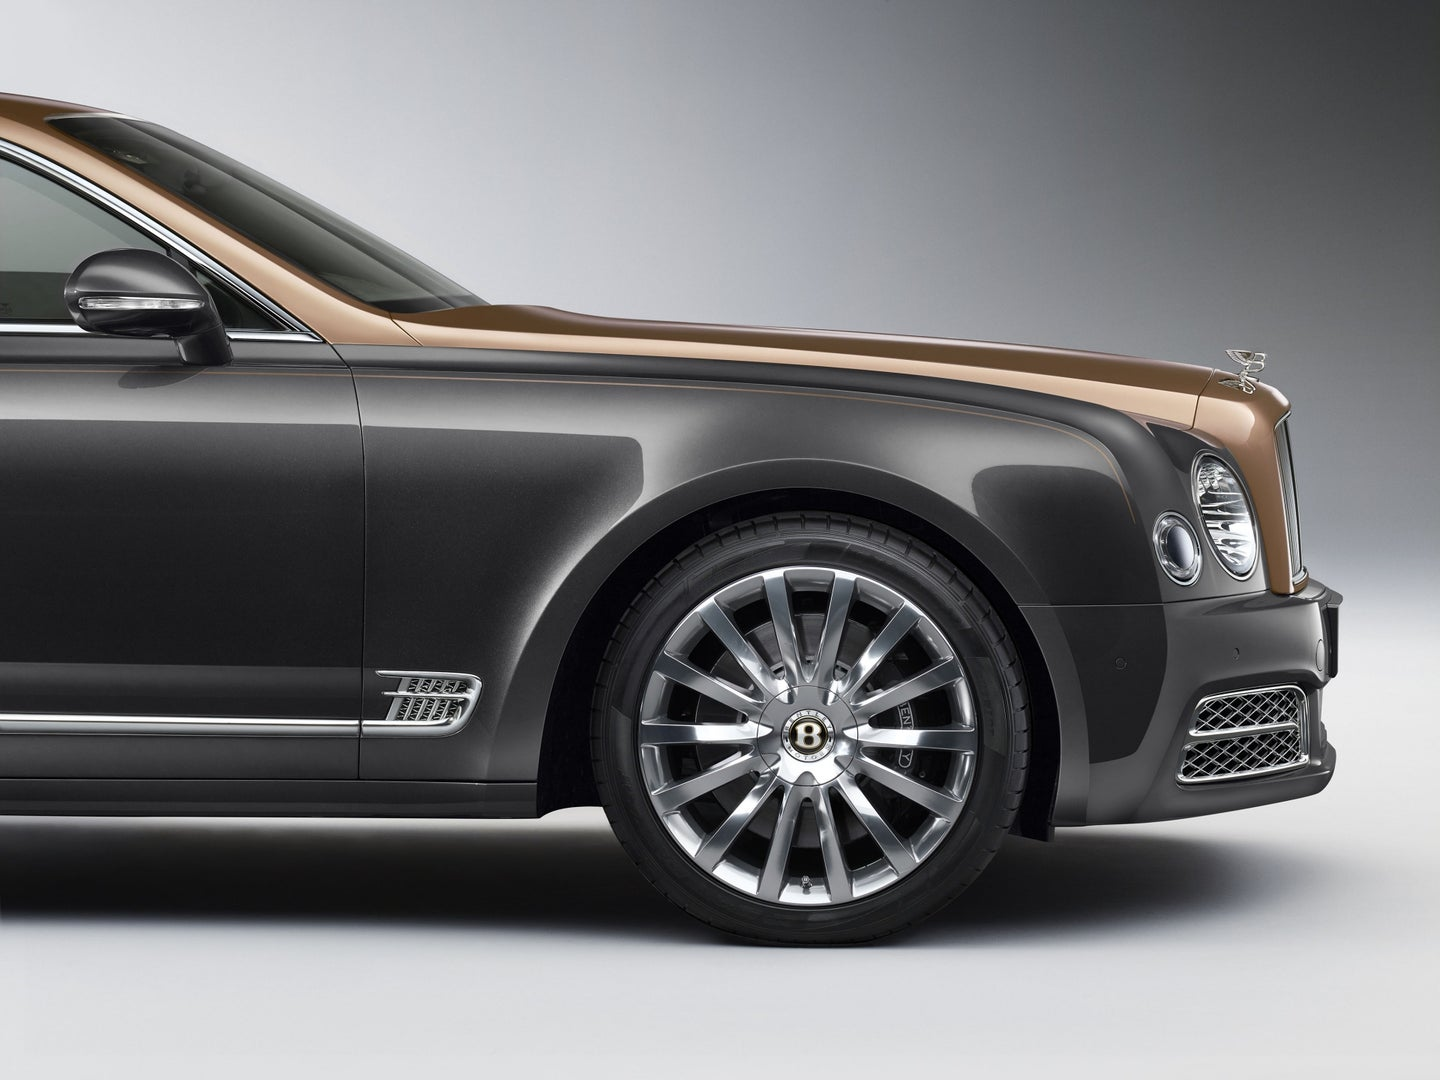 Bentley Celebrates 100 Years with Centenary Specification for All 2019 Models - Bentley Mulsanne - New Centre Badge